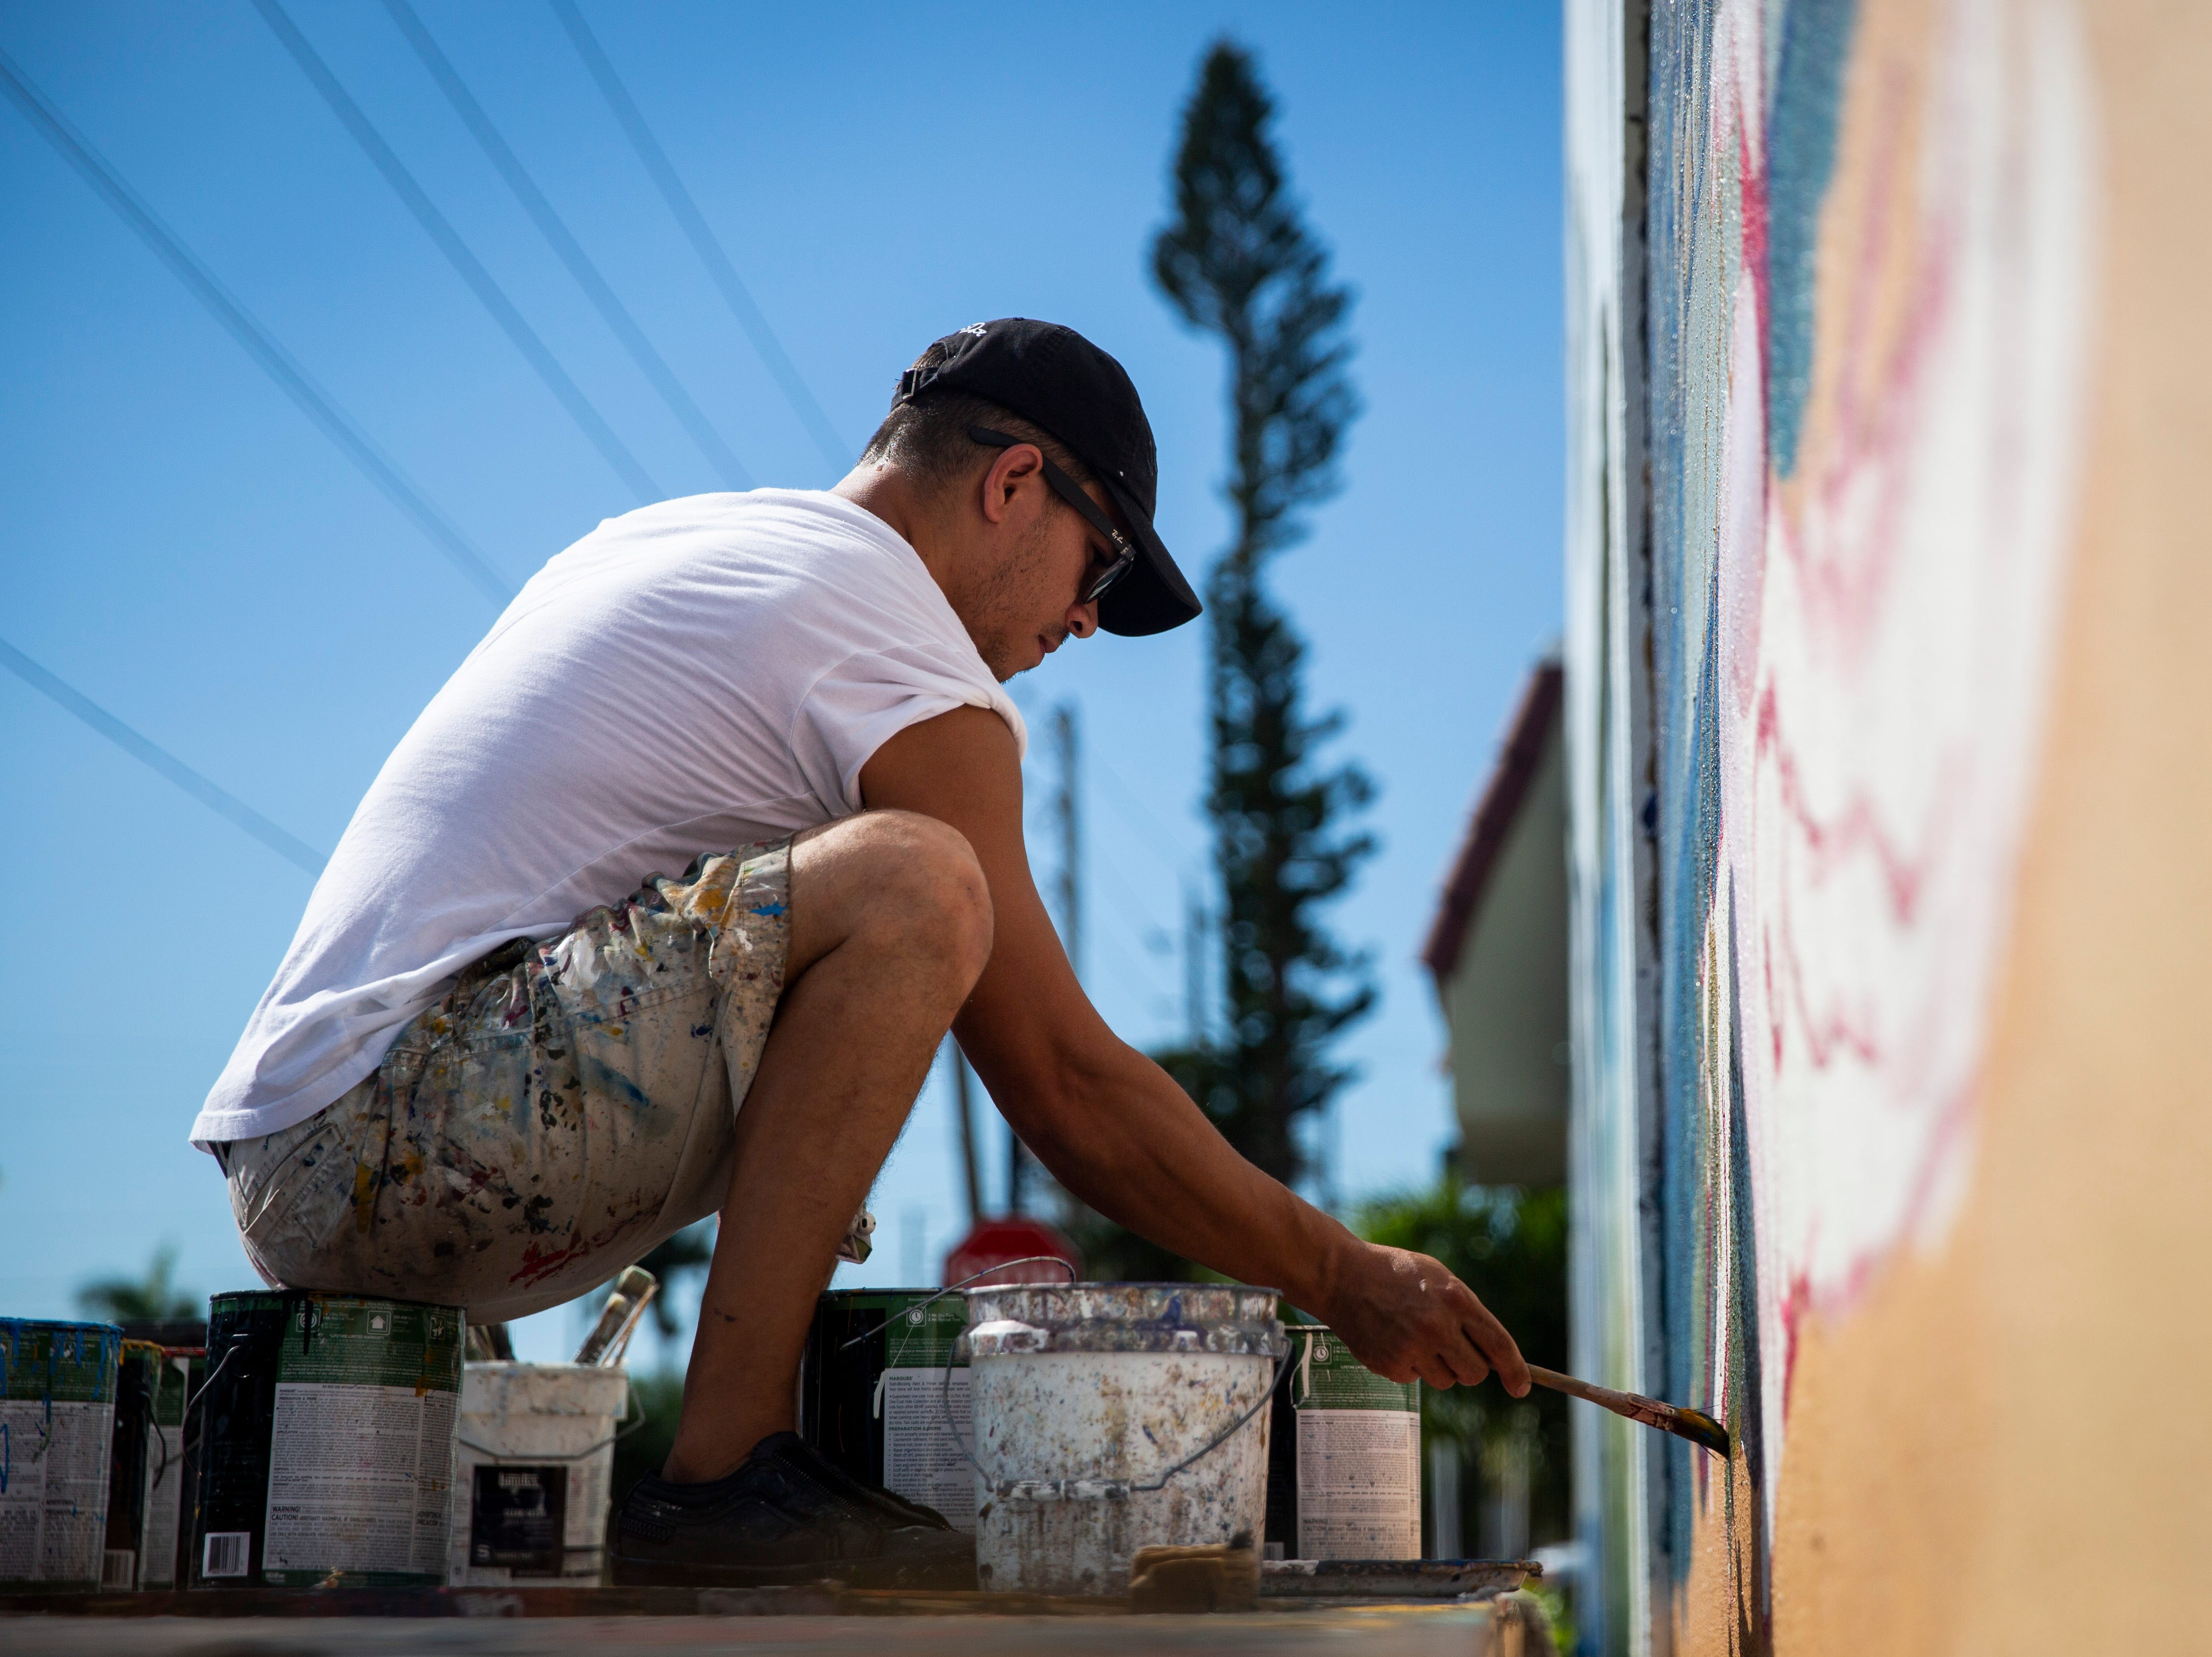 Naples artist Juan Diaz works on a mural on Friday, November 23, 2018, at the corner of U.S. 41 South and First Avenue South in Naples.